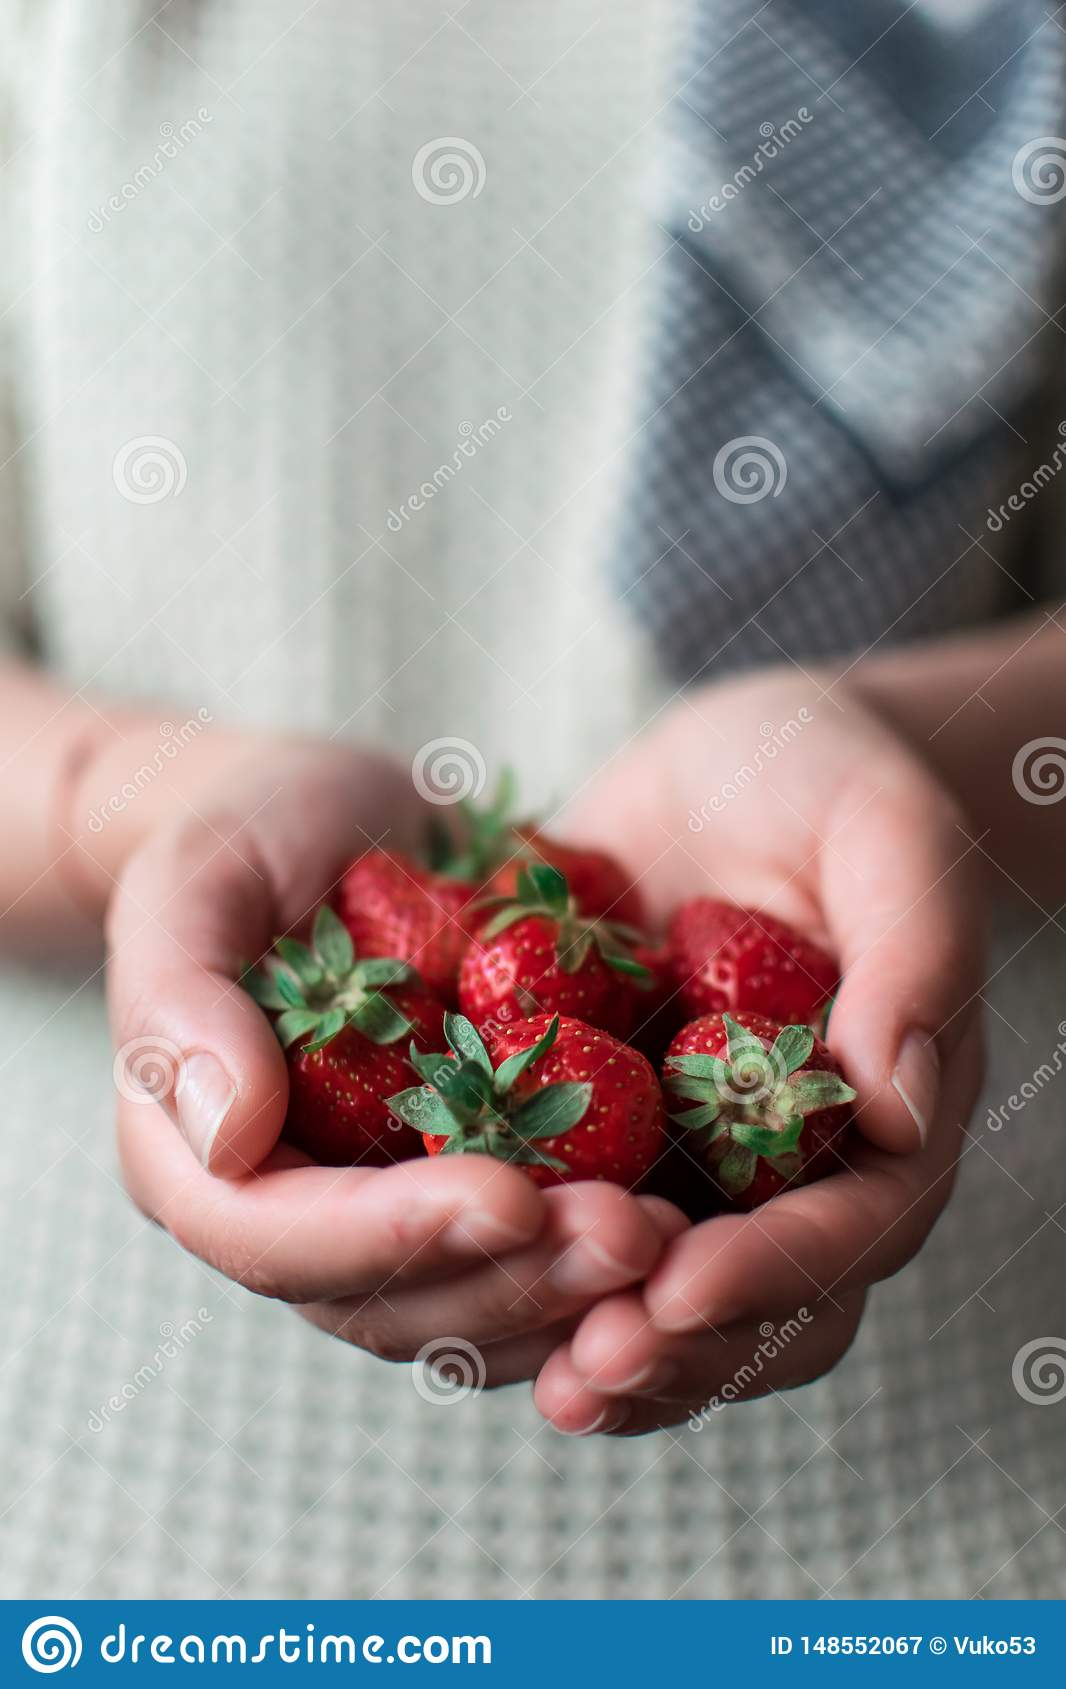 Strawberries in the woman`s hands.